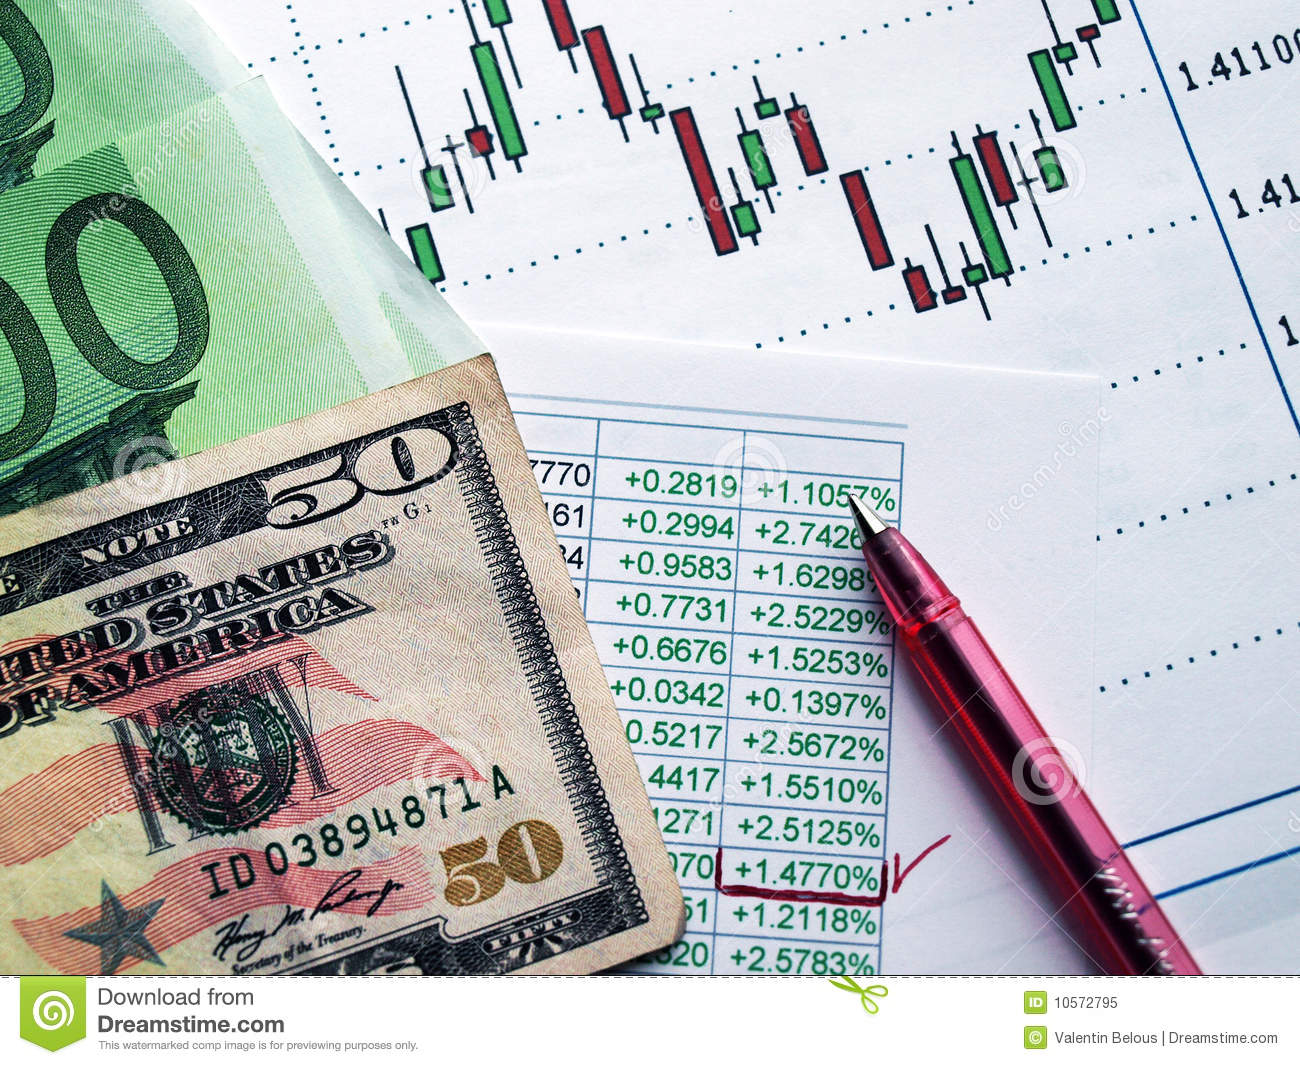 how to see money exchange rate